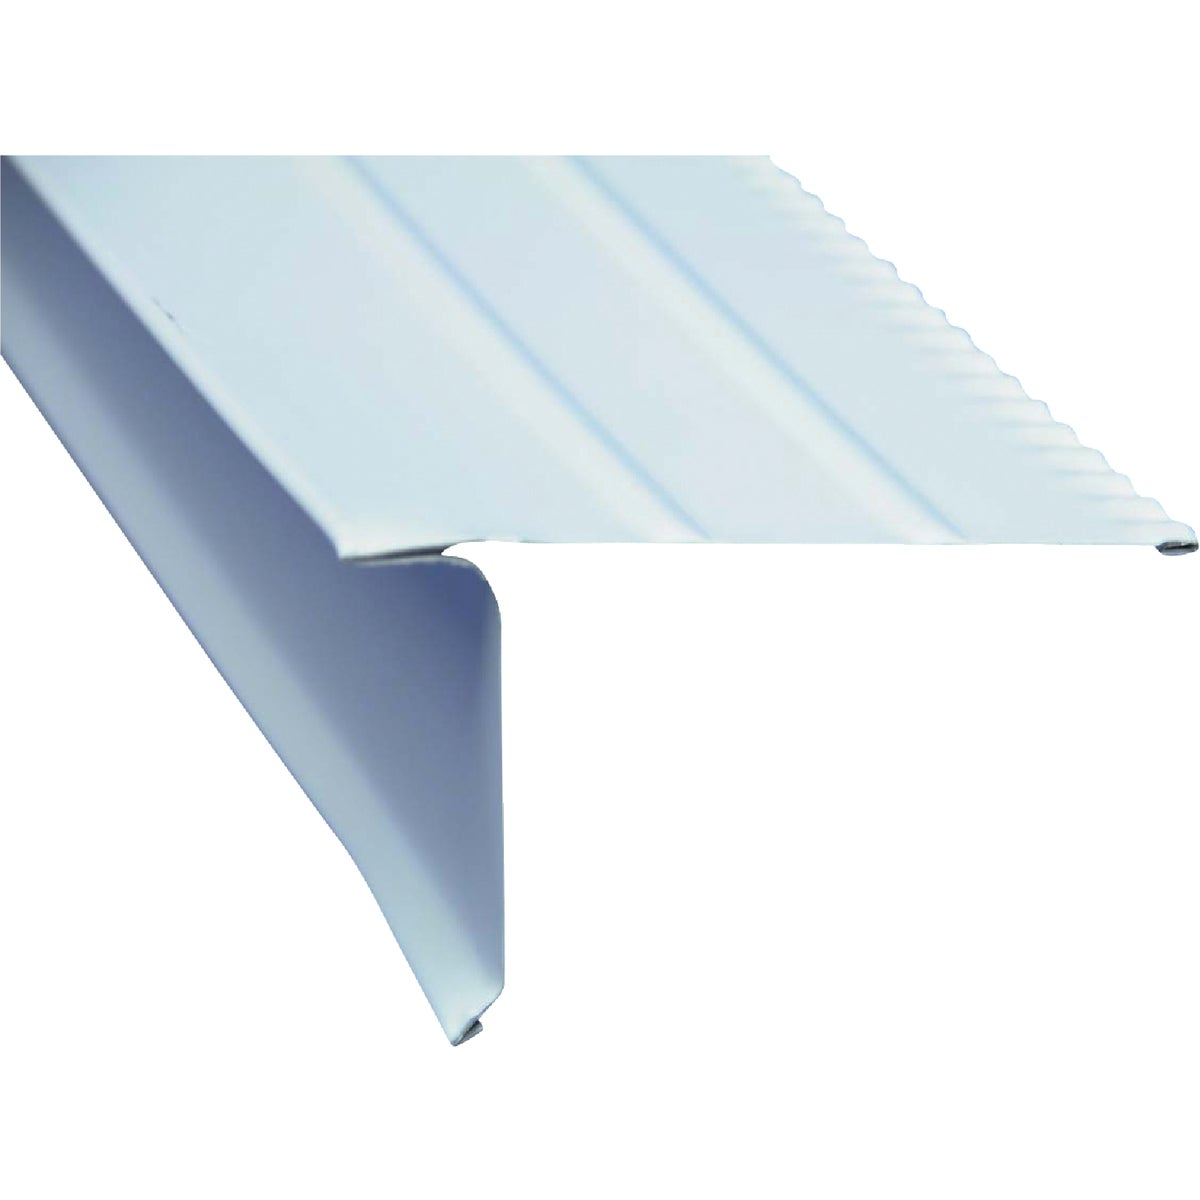 WHITE ALM ROOF DRIP EDGE - 5504100120 by Amerimax Home Prod